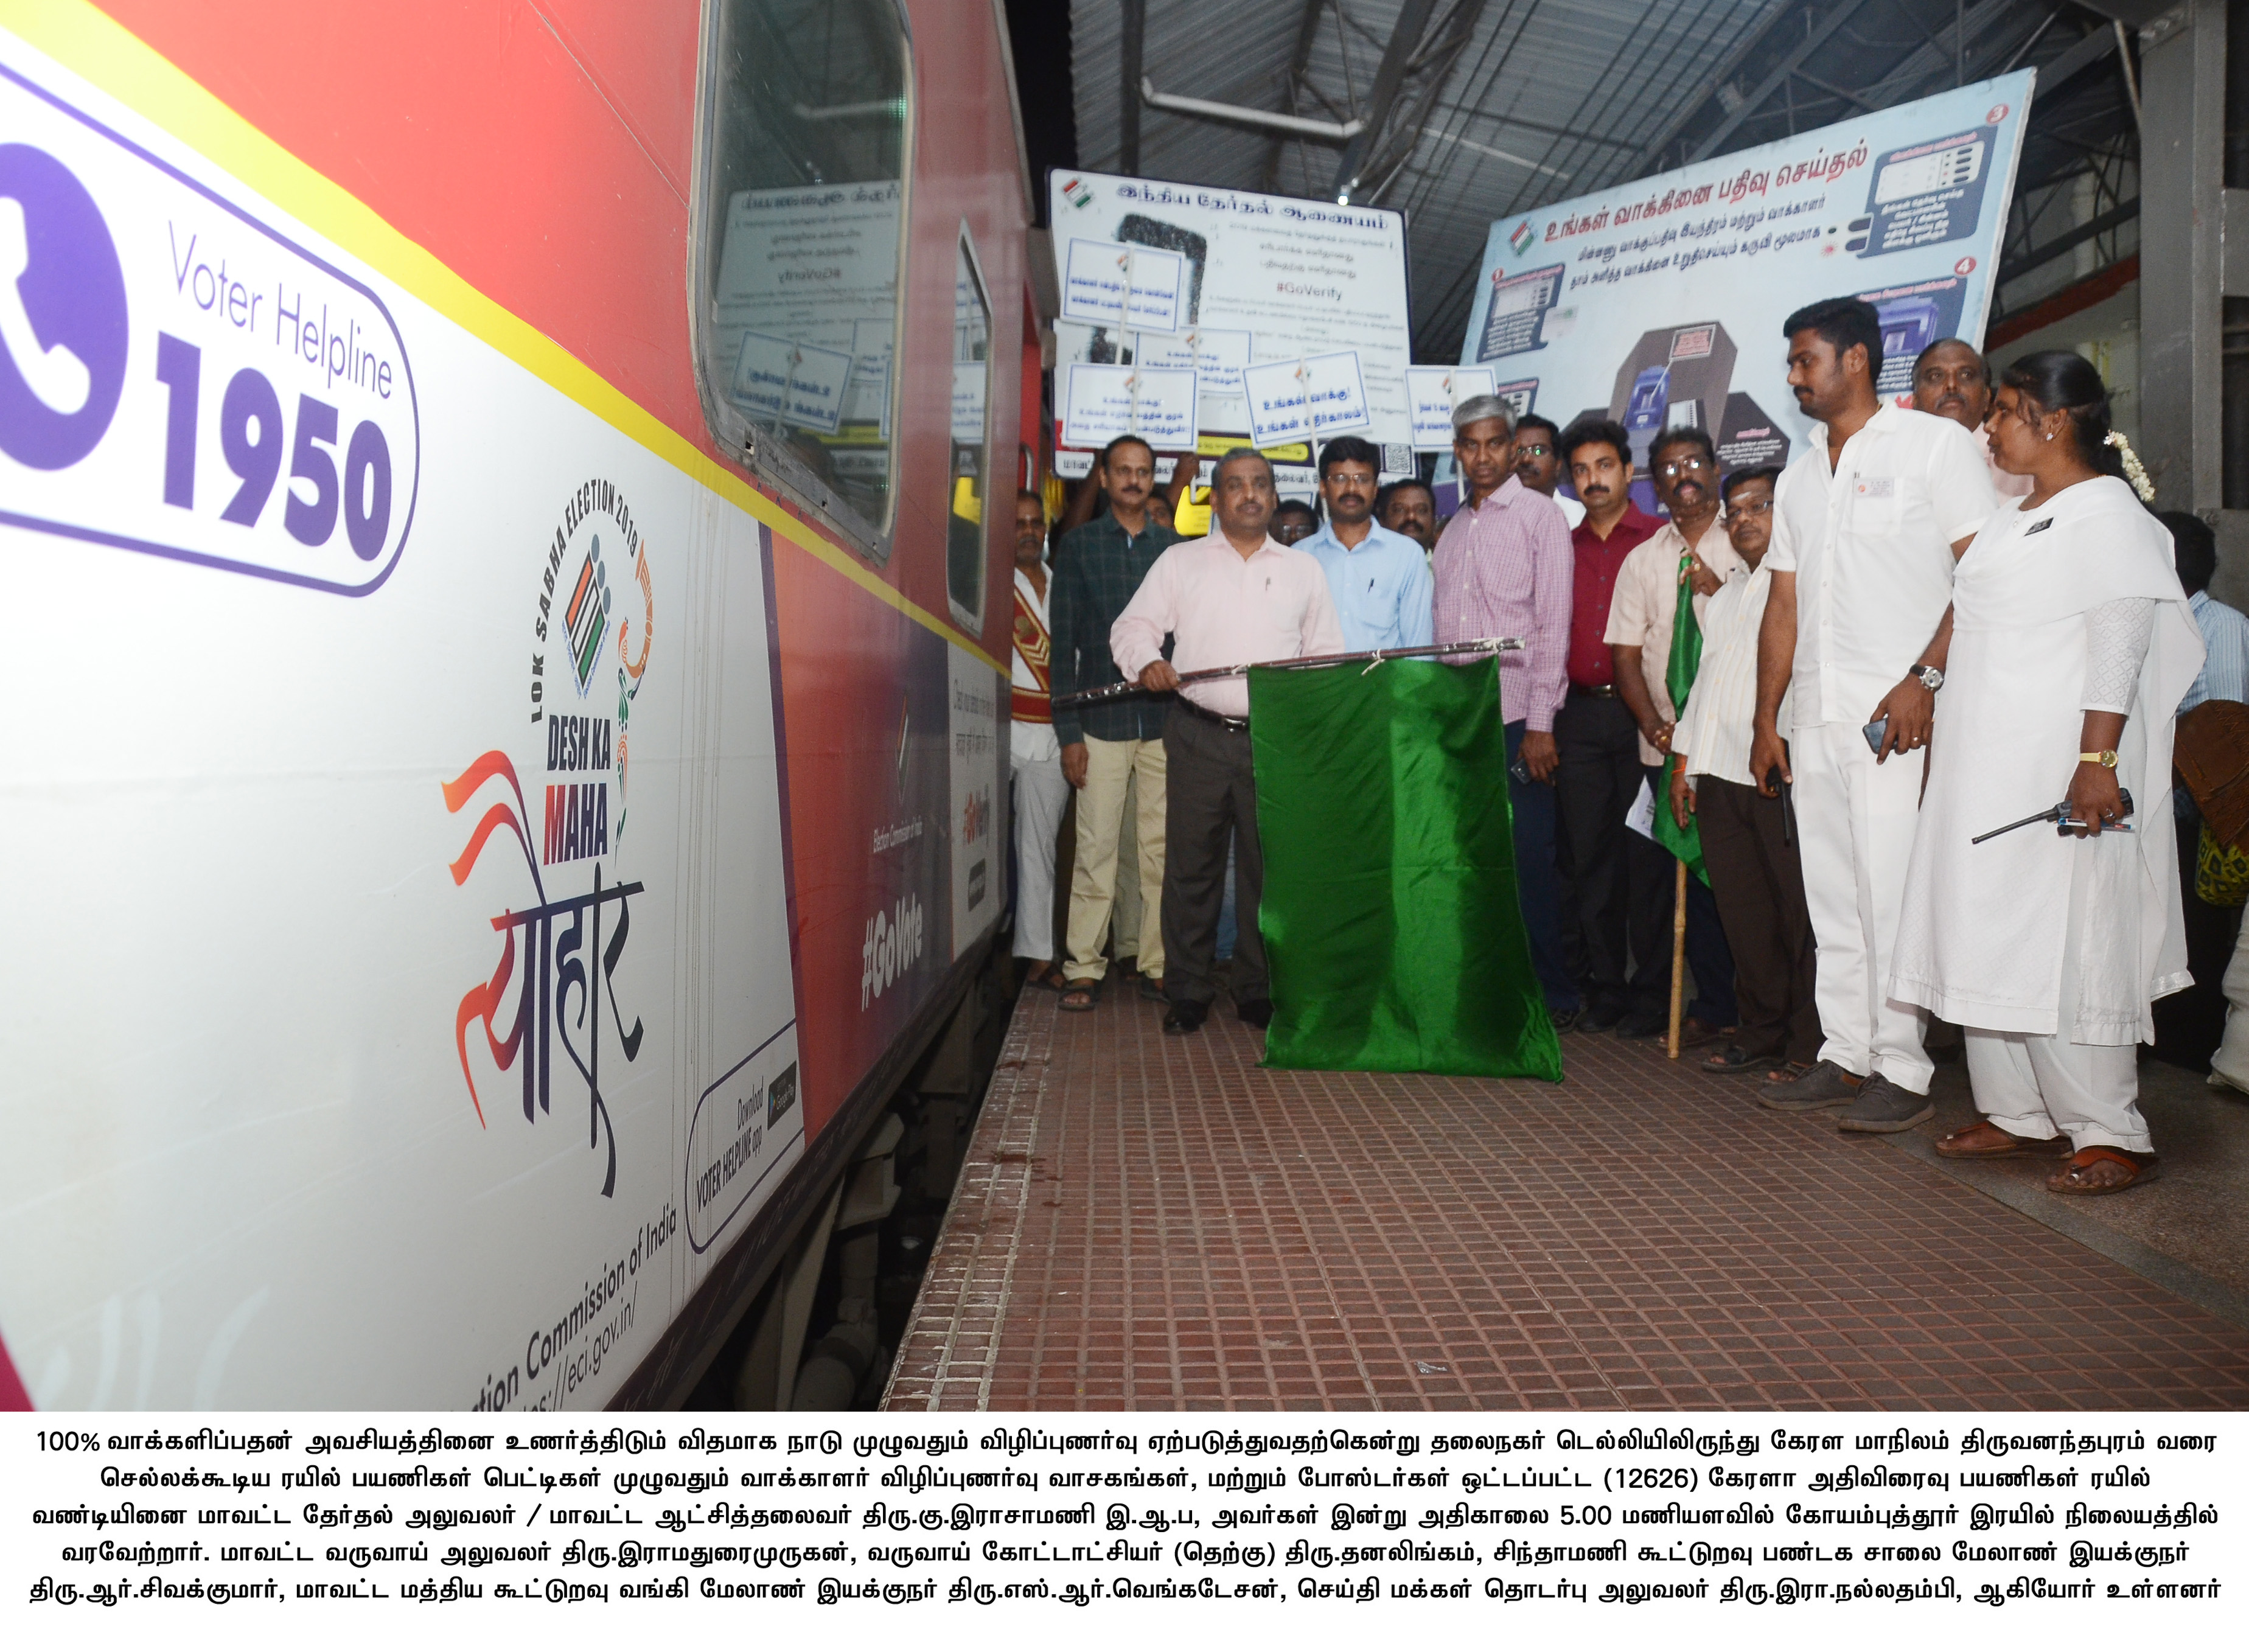 Lok Sabha General Election Awareness SVEEP - Train Flagged off at Coimbatore Railway Station